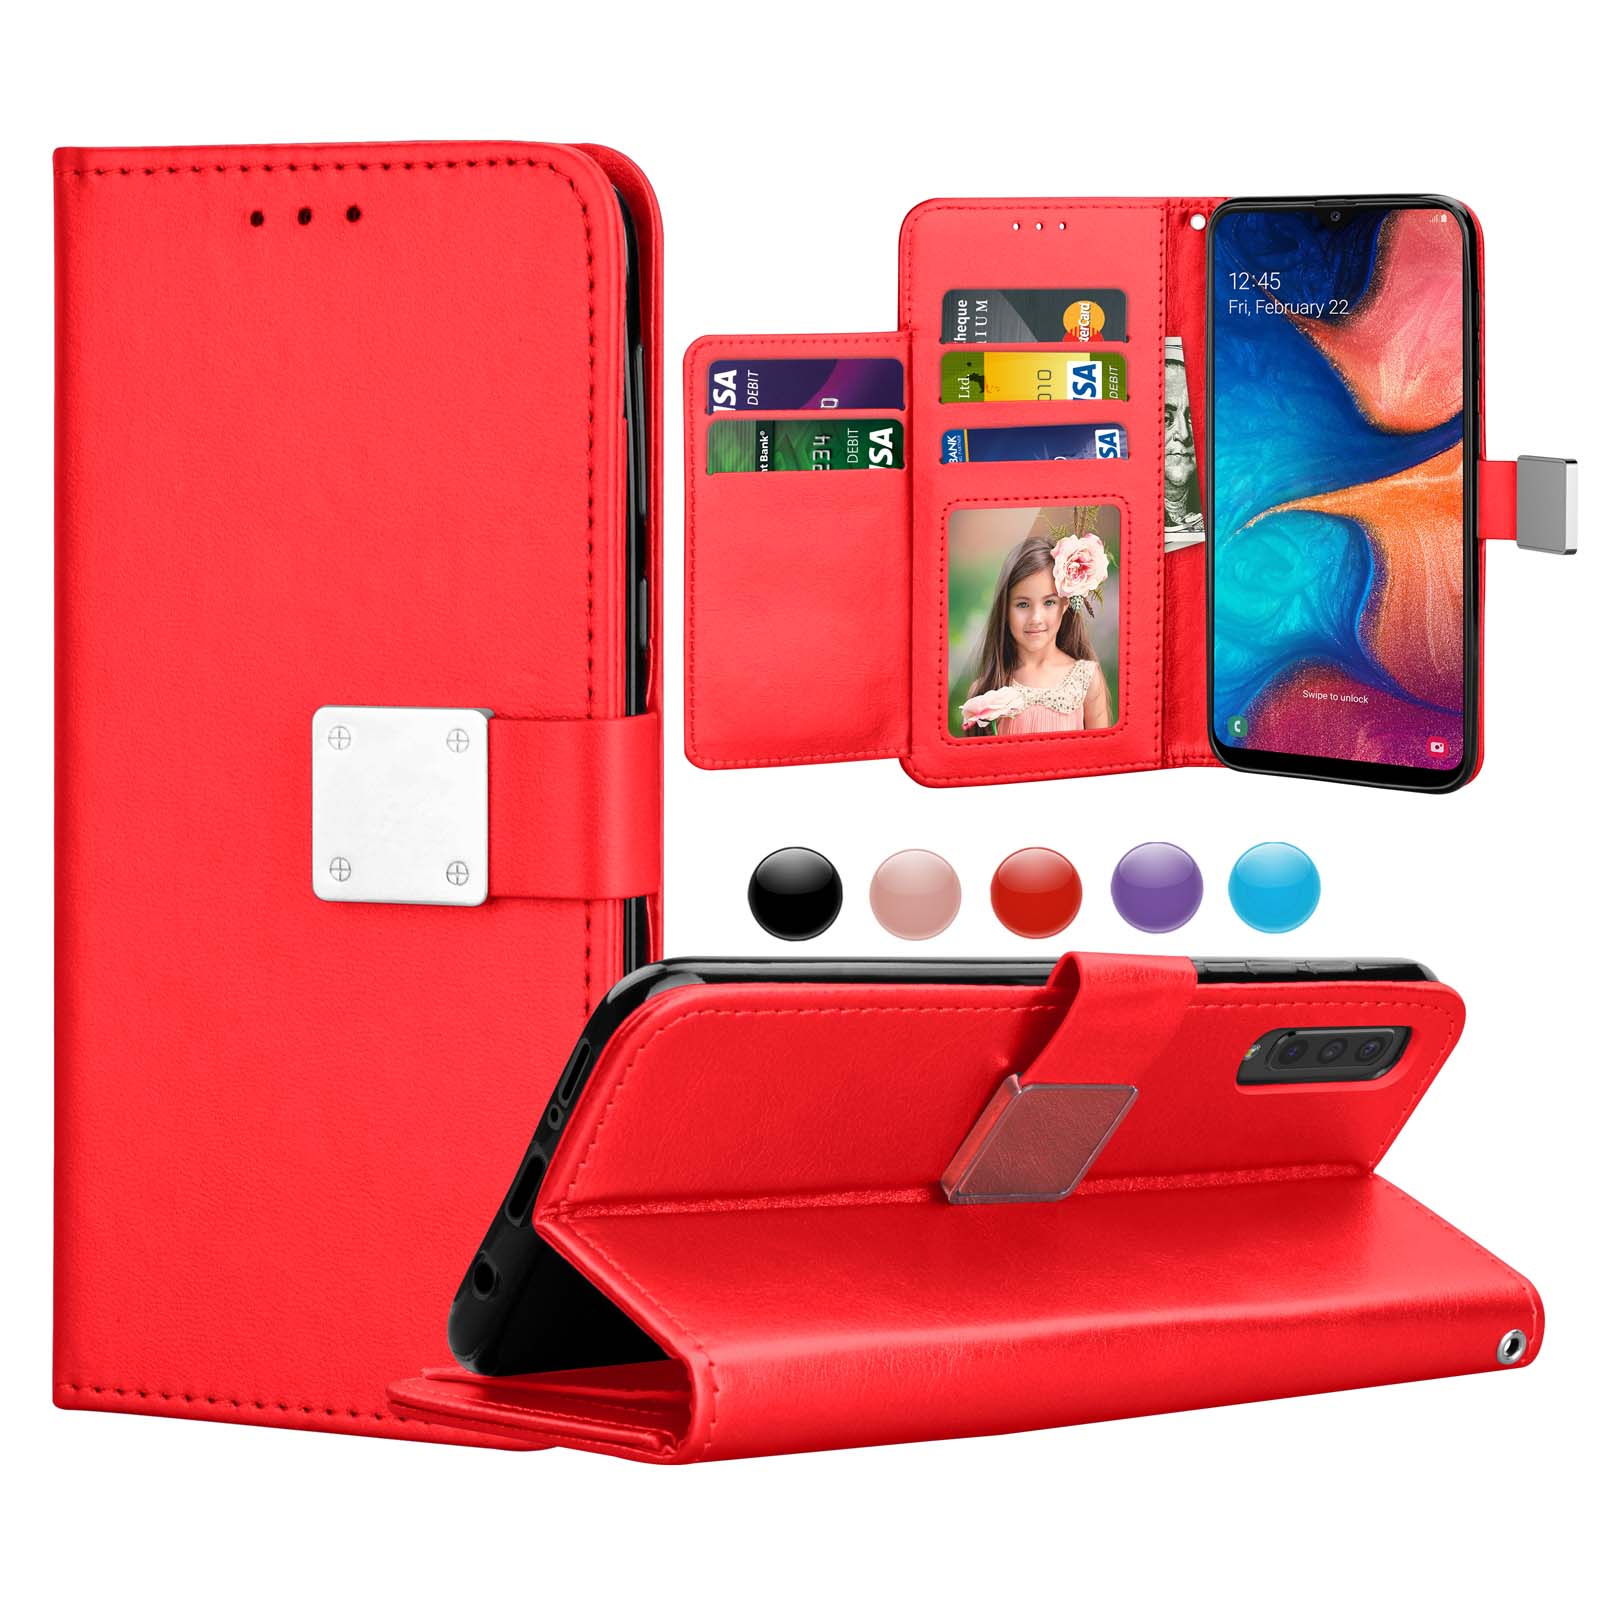 Flip Case Fit for Samsung Galaxy A50 Card Holders Kickstand Extra-Protective Leather Cover Wallet for Samsung Galaxy A50